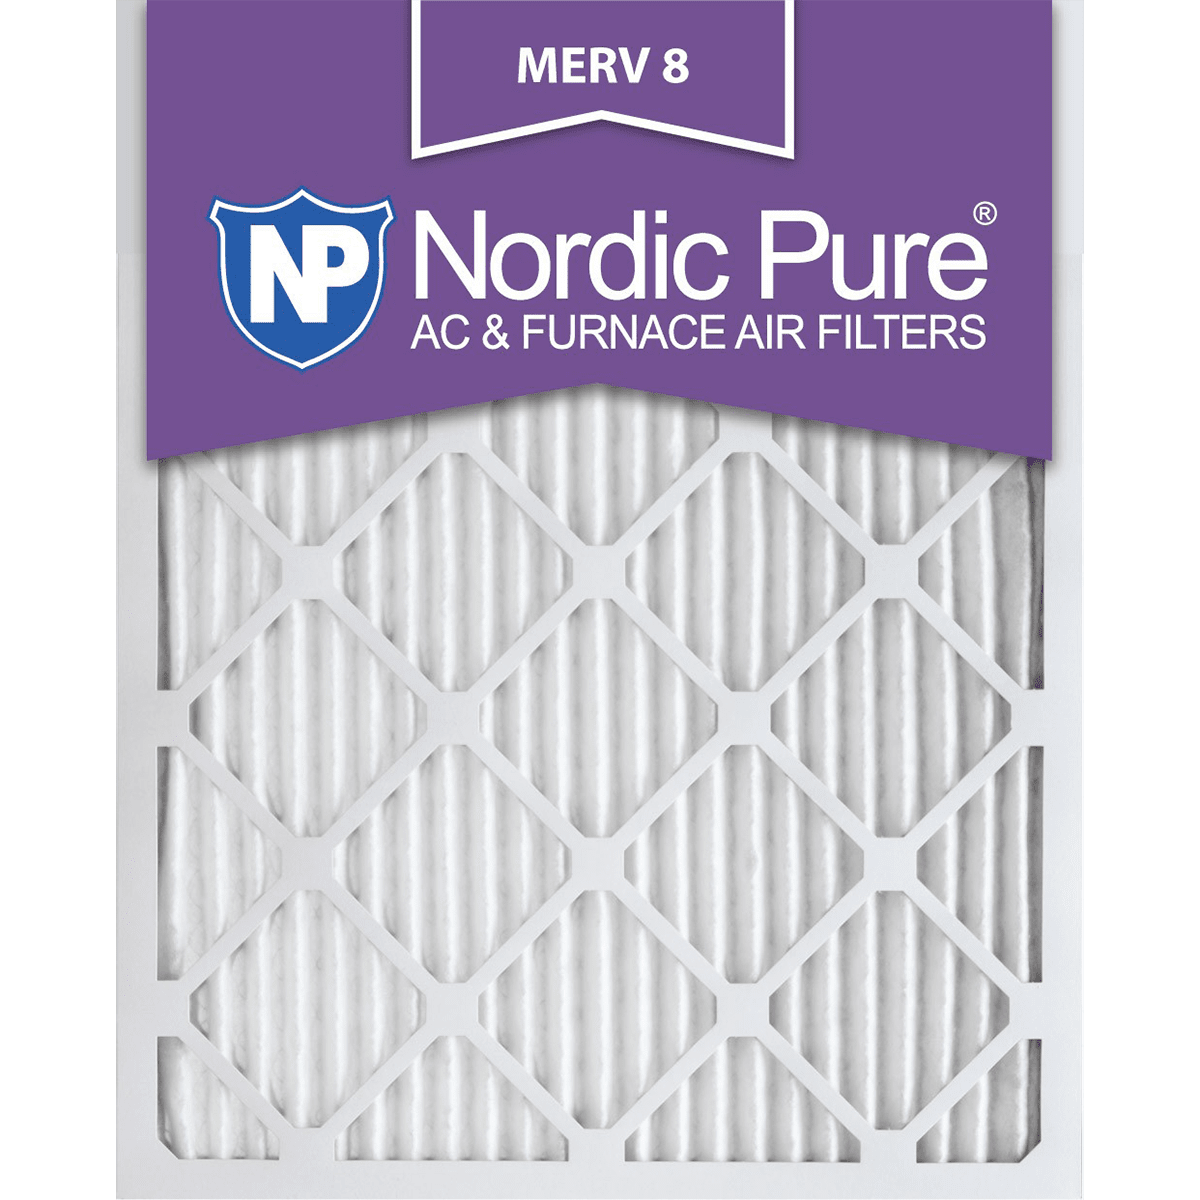 Nordic Pure MERV 8 1-in. Pleated Furnace Filters (6 Pack) no6652